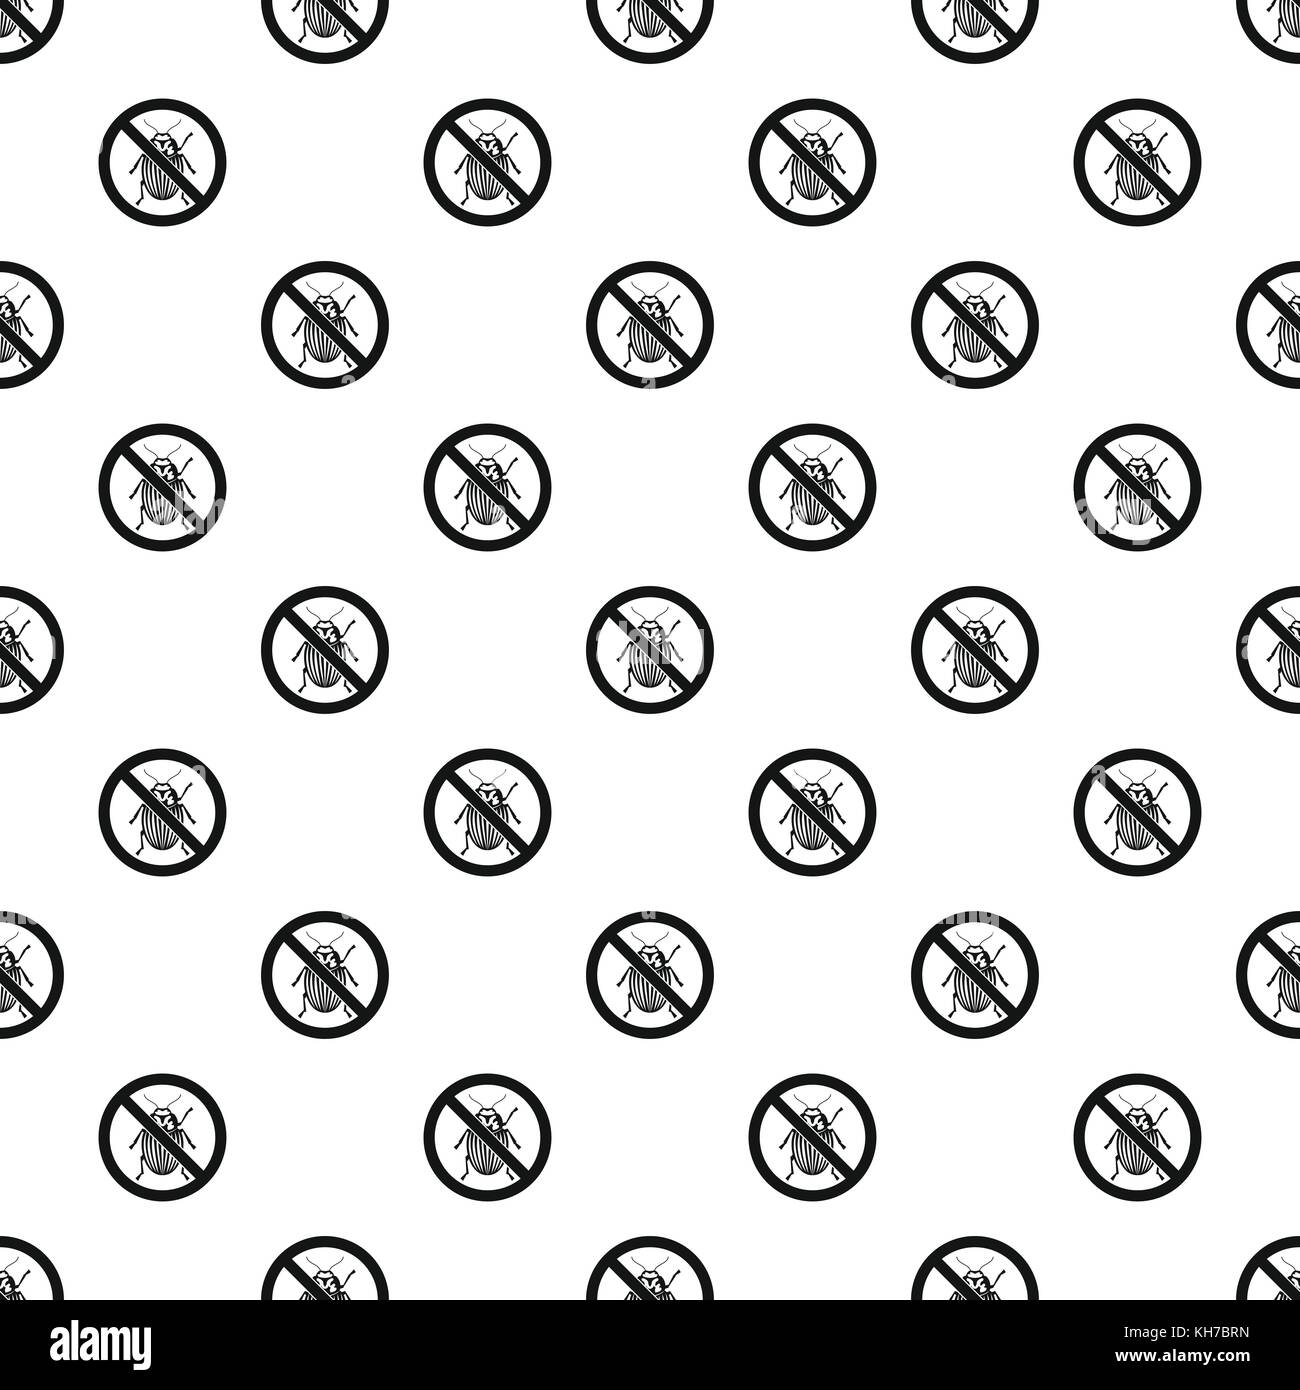 Prohibition sign colorado beetles pattern - Stock Image